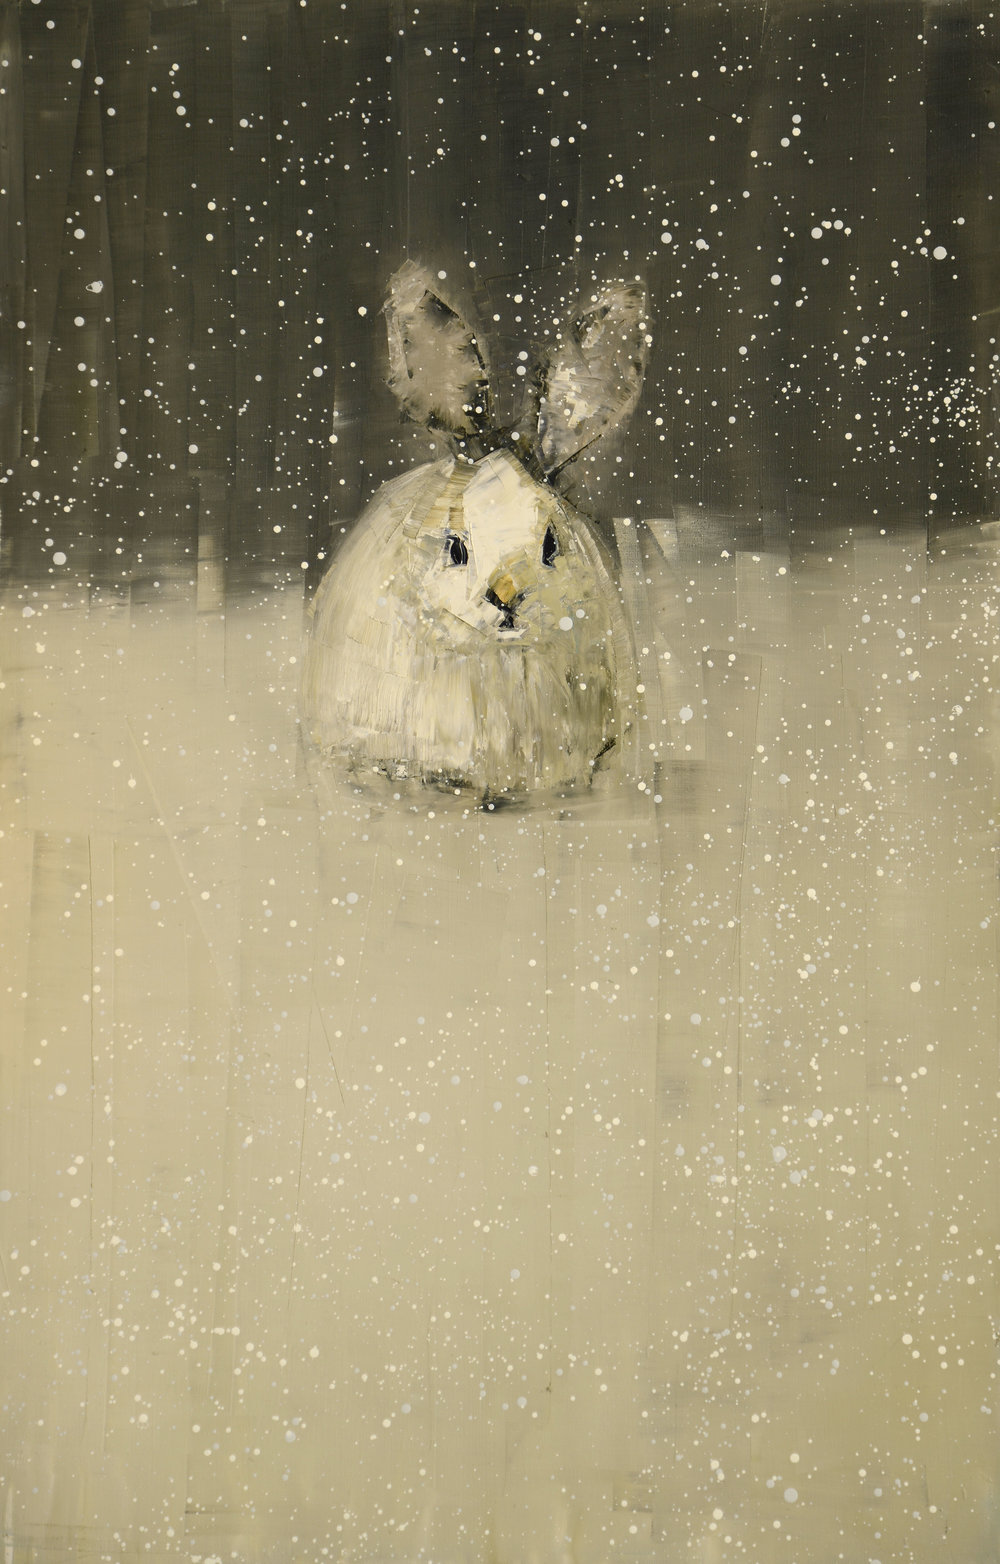 SNOWSHOE HARE NO. 2    -PRIVATE COLLECTION-  46 x 30 inches  oil and wax on linen